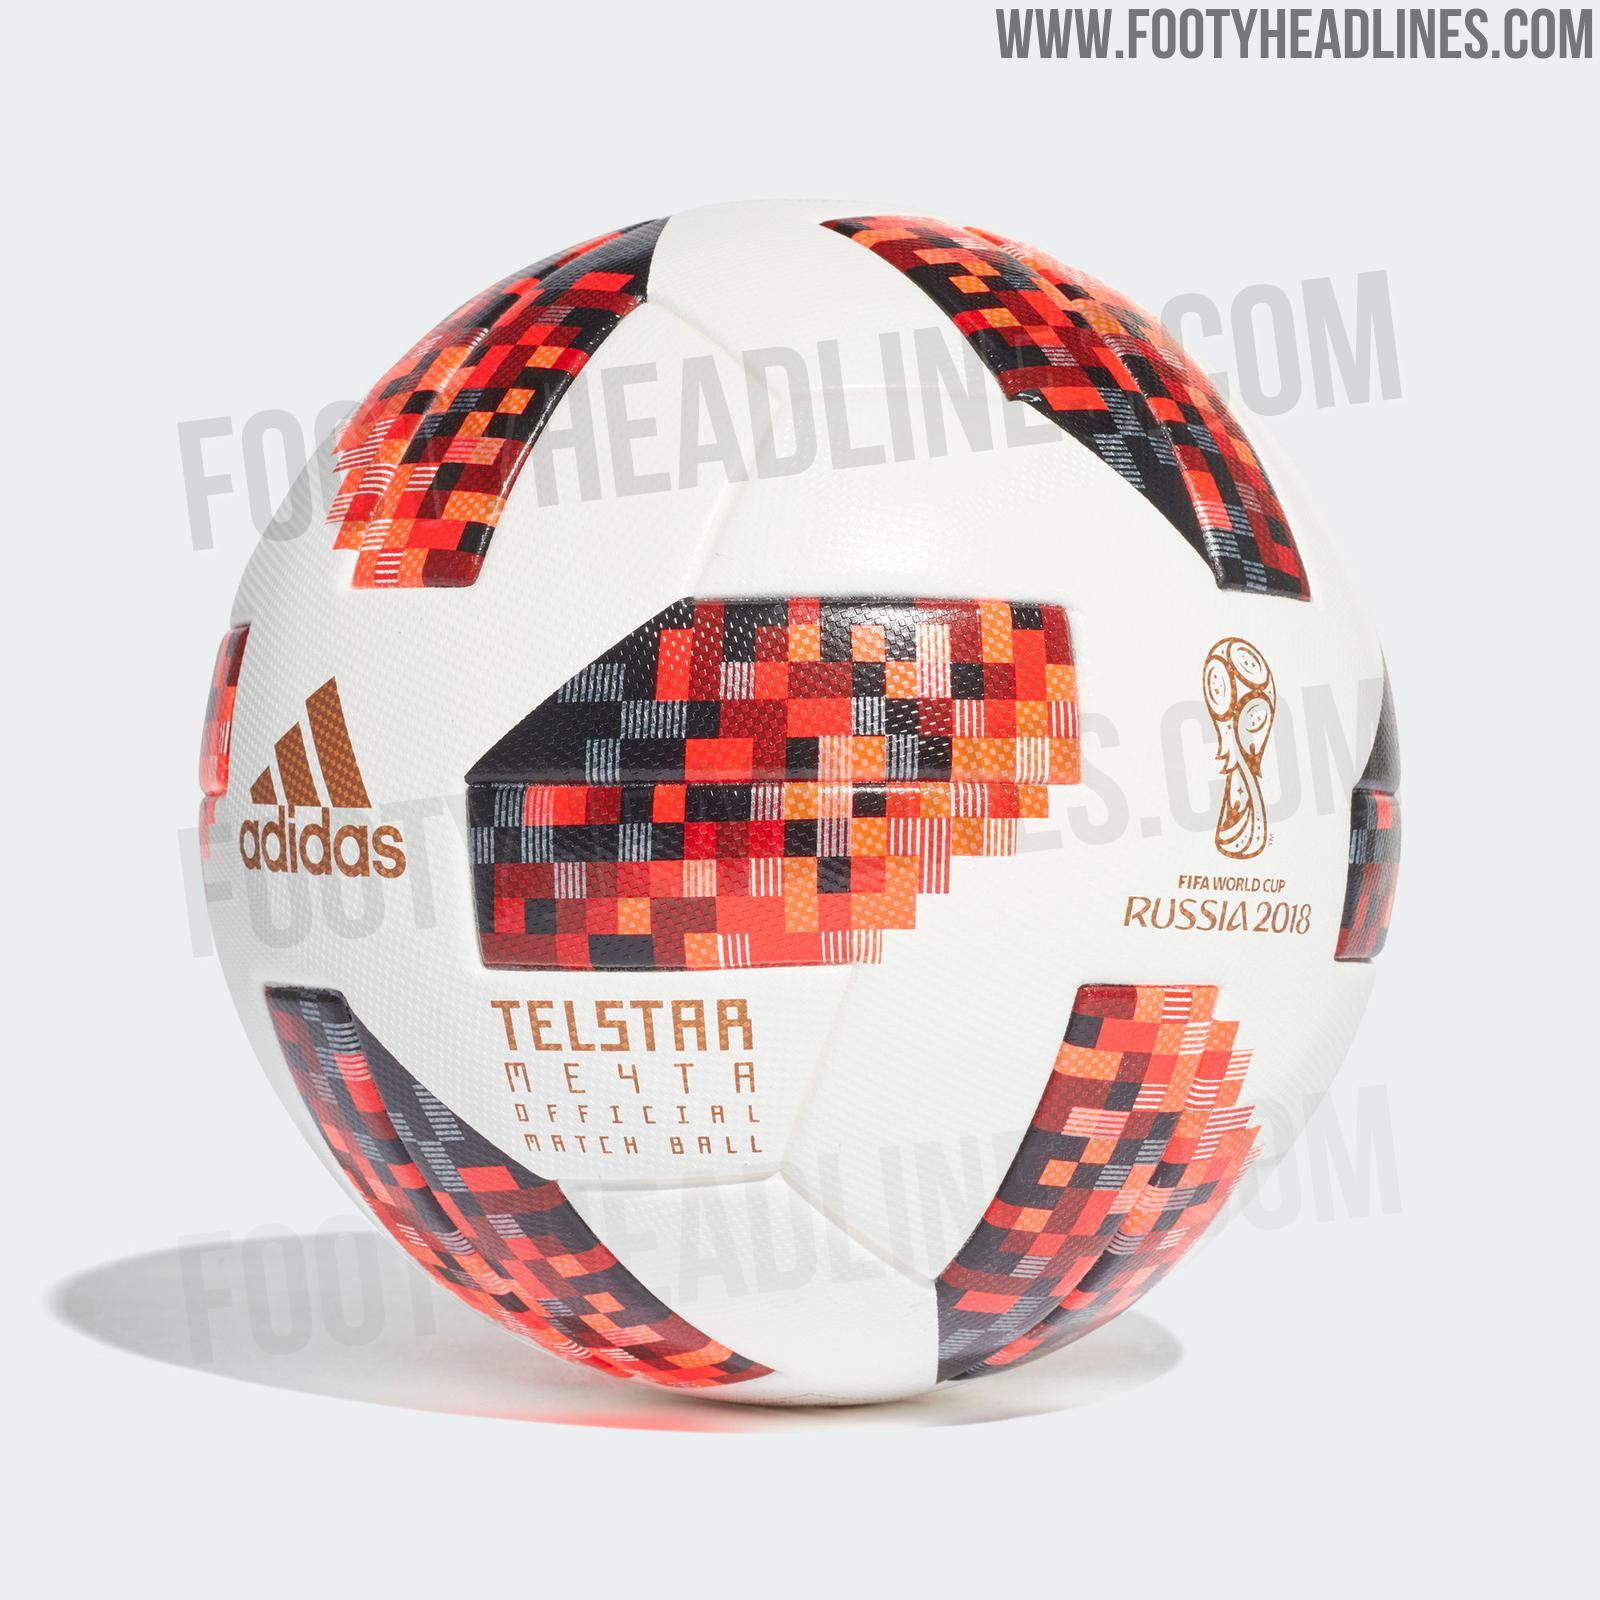 Adidas Telstar 18  Mechta  2018 World Cup Knock-Out Stage Official Match  Ball c43f27350cf4f